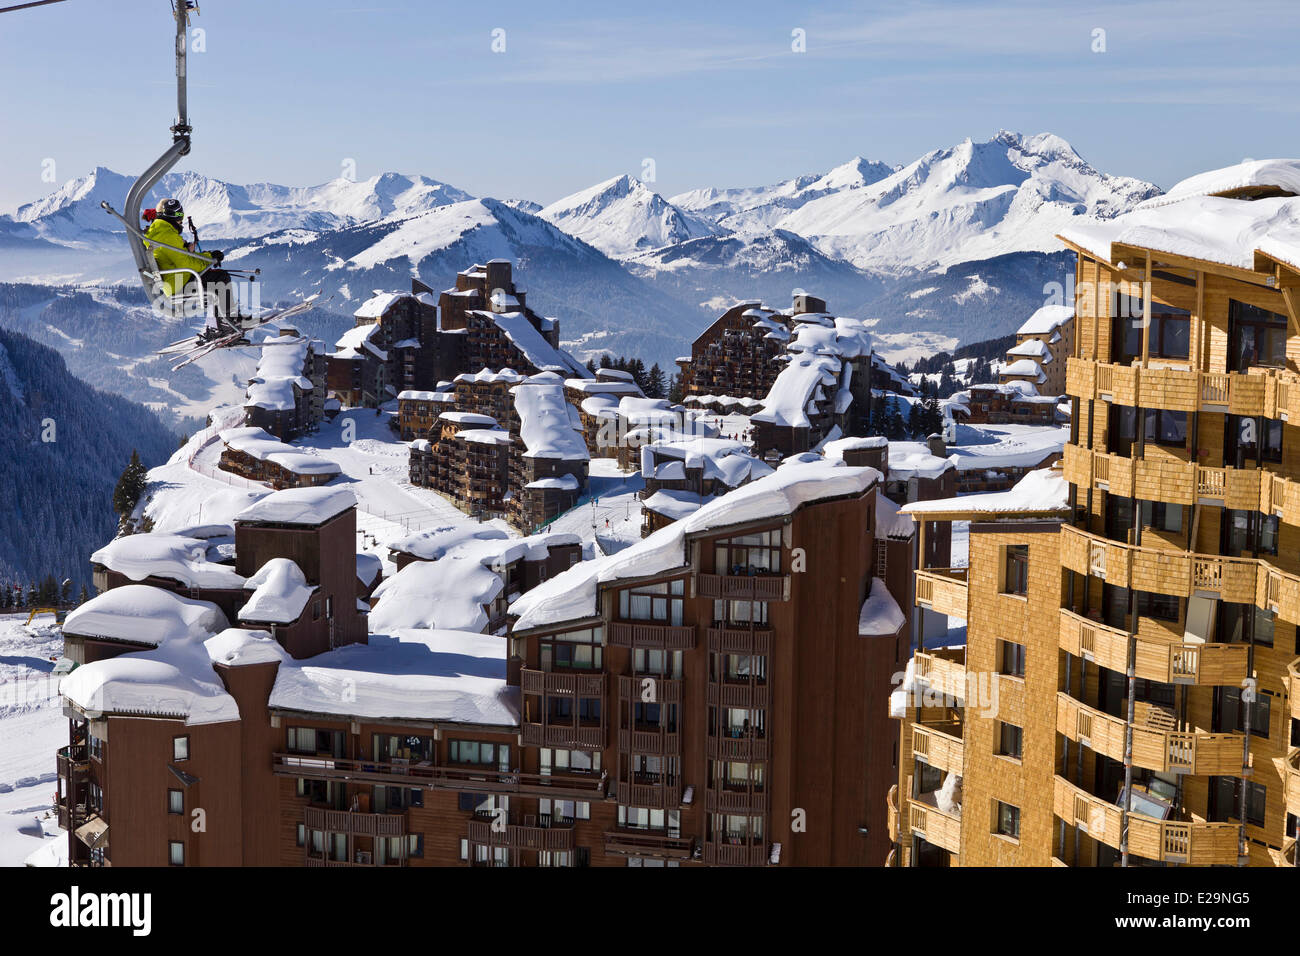 France, Haute Savoie, Avoriaz, chairlift in front of the ski resort - Stock Image